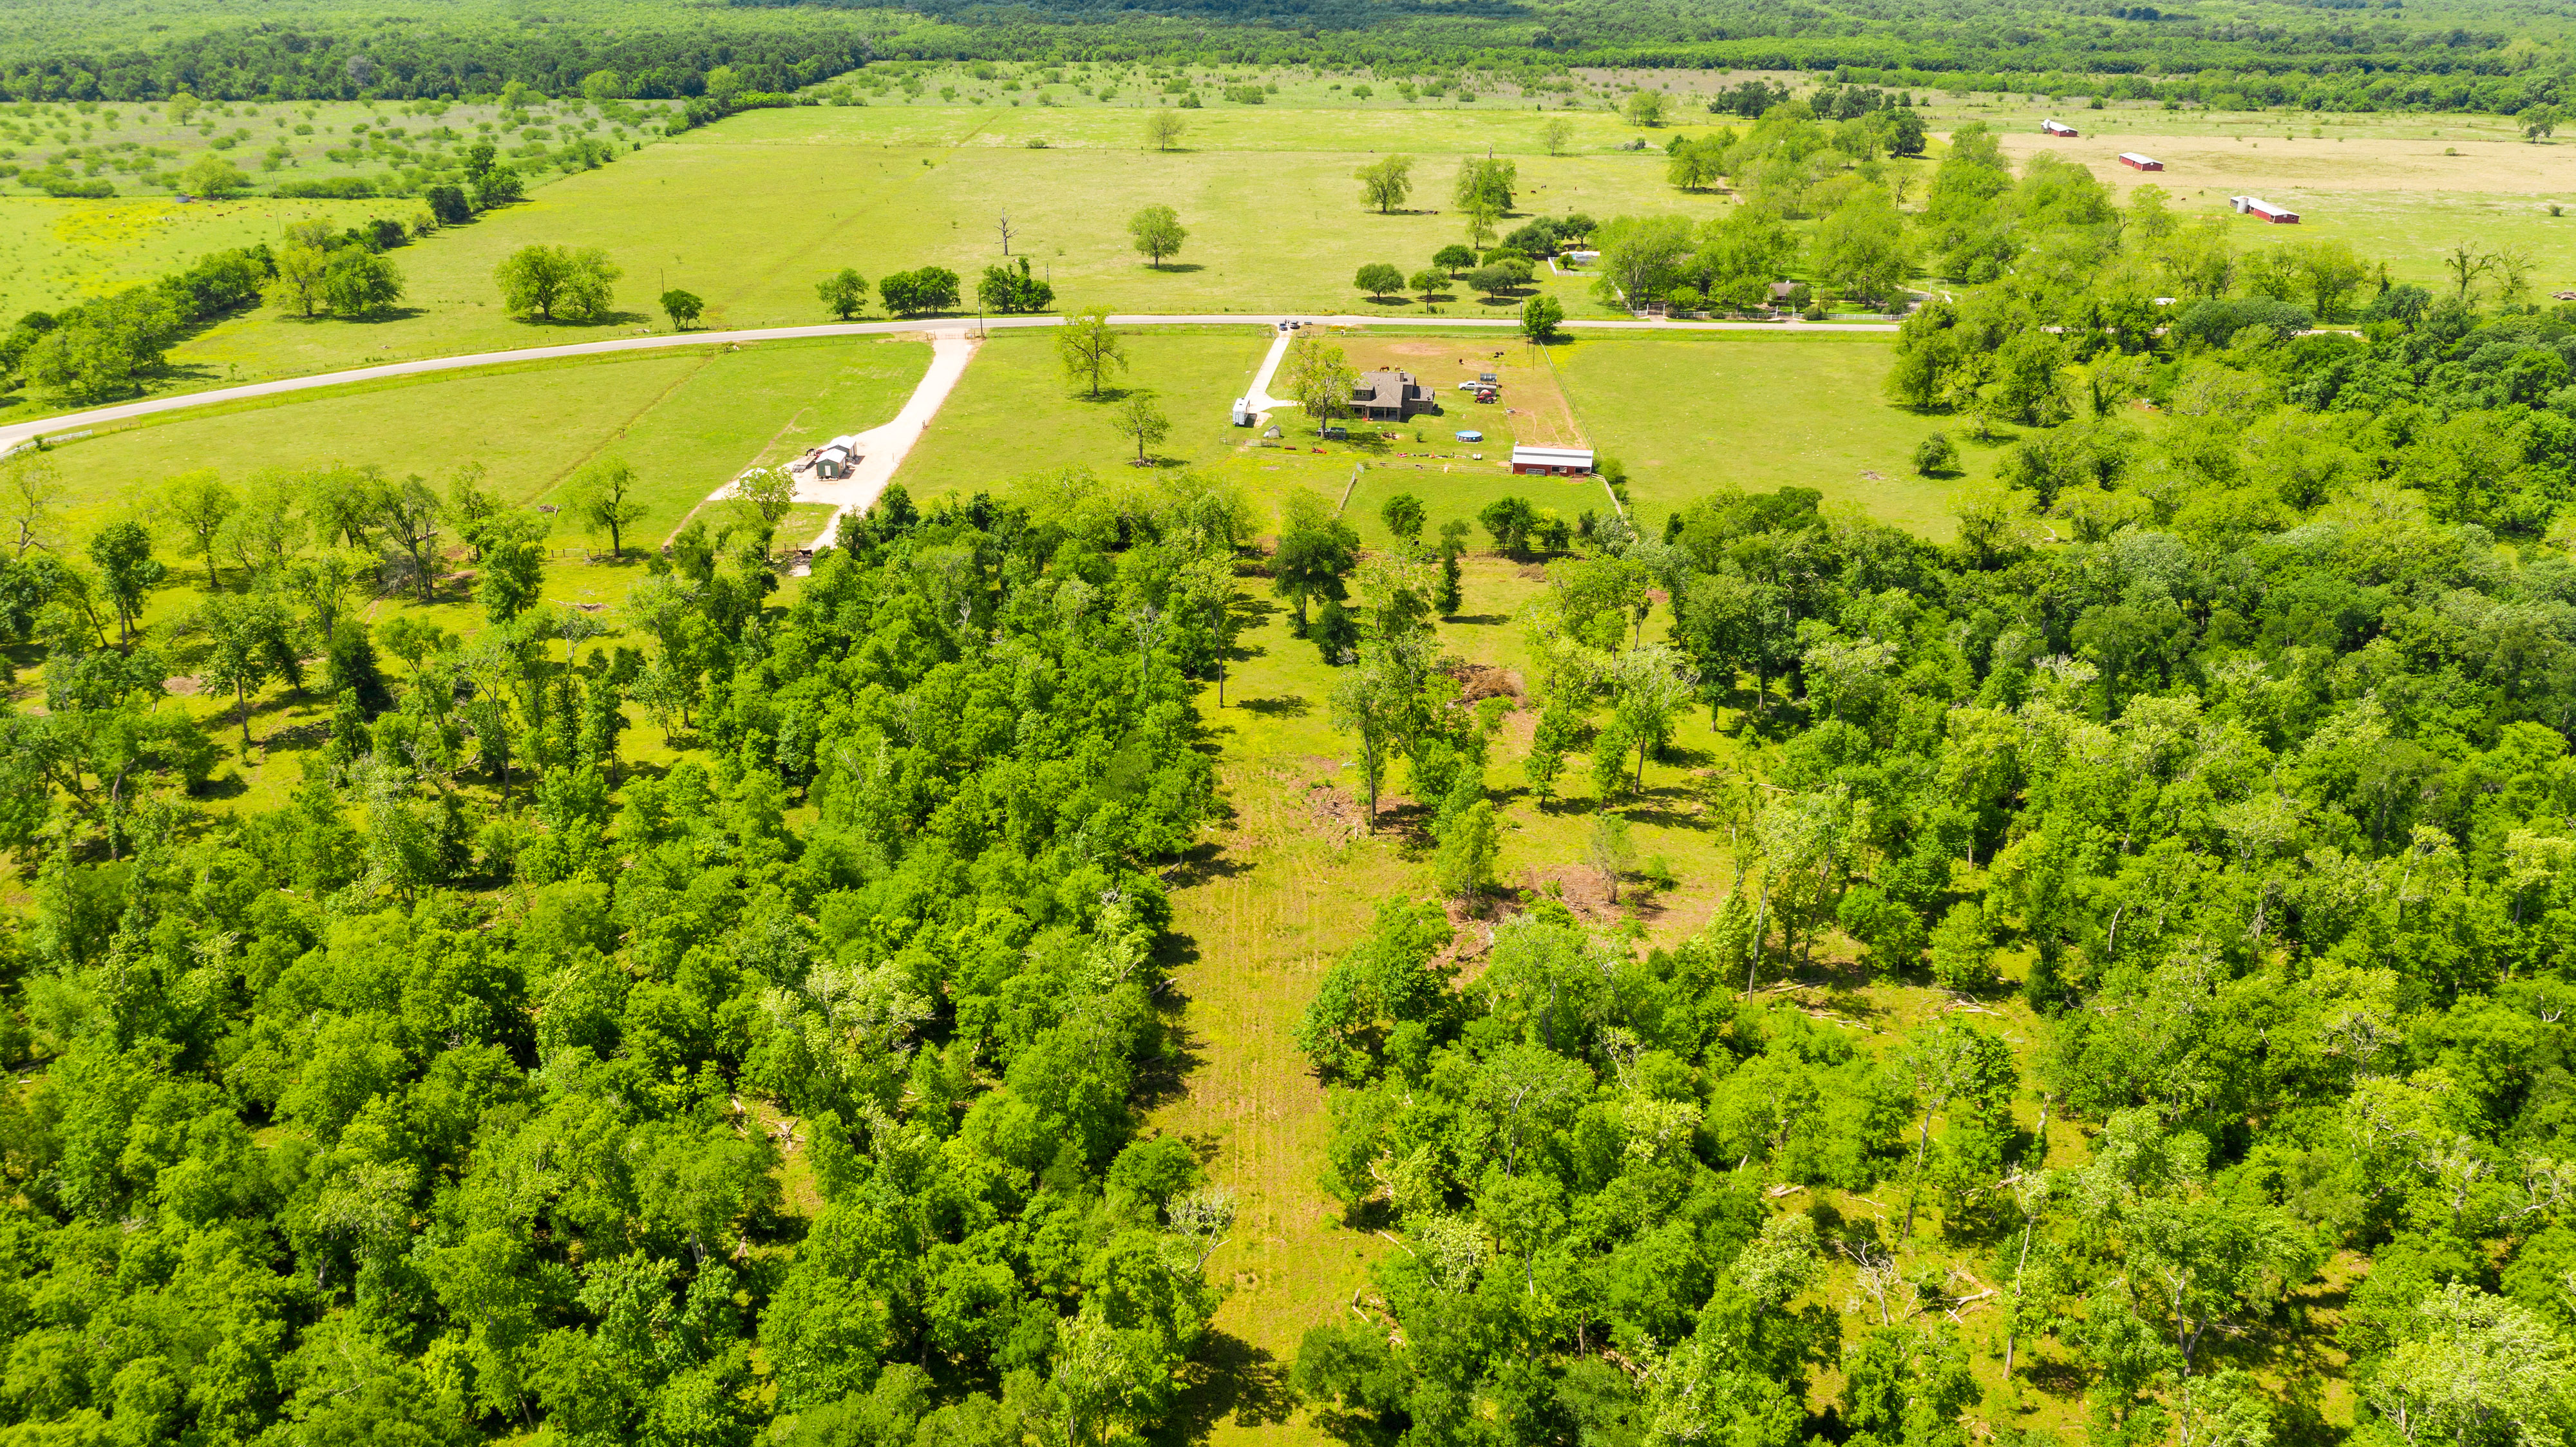 Custom Country Home with Acreage in Sealy - Image 9 of 46